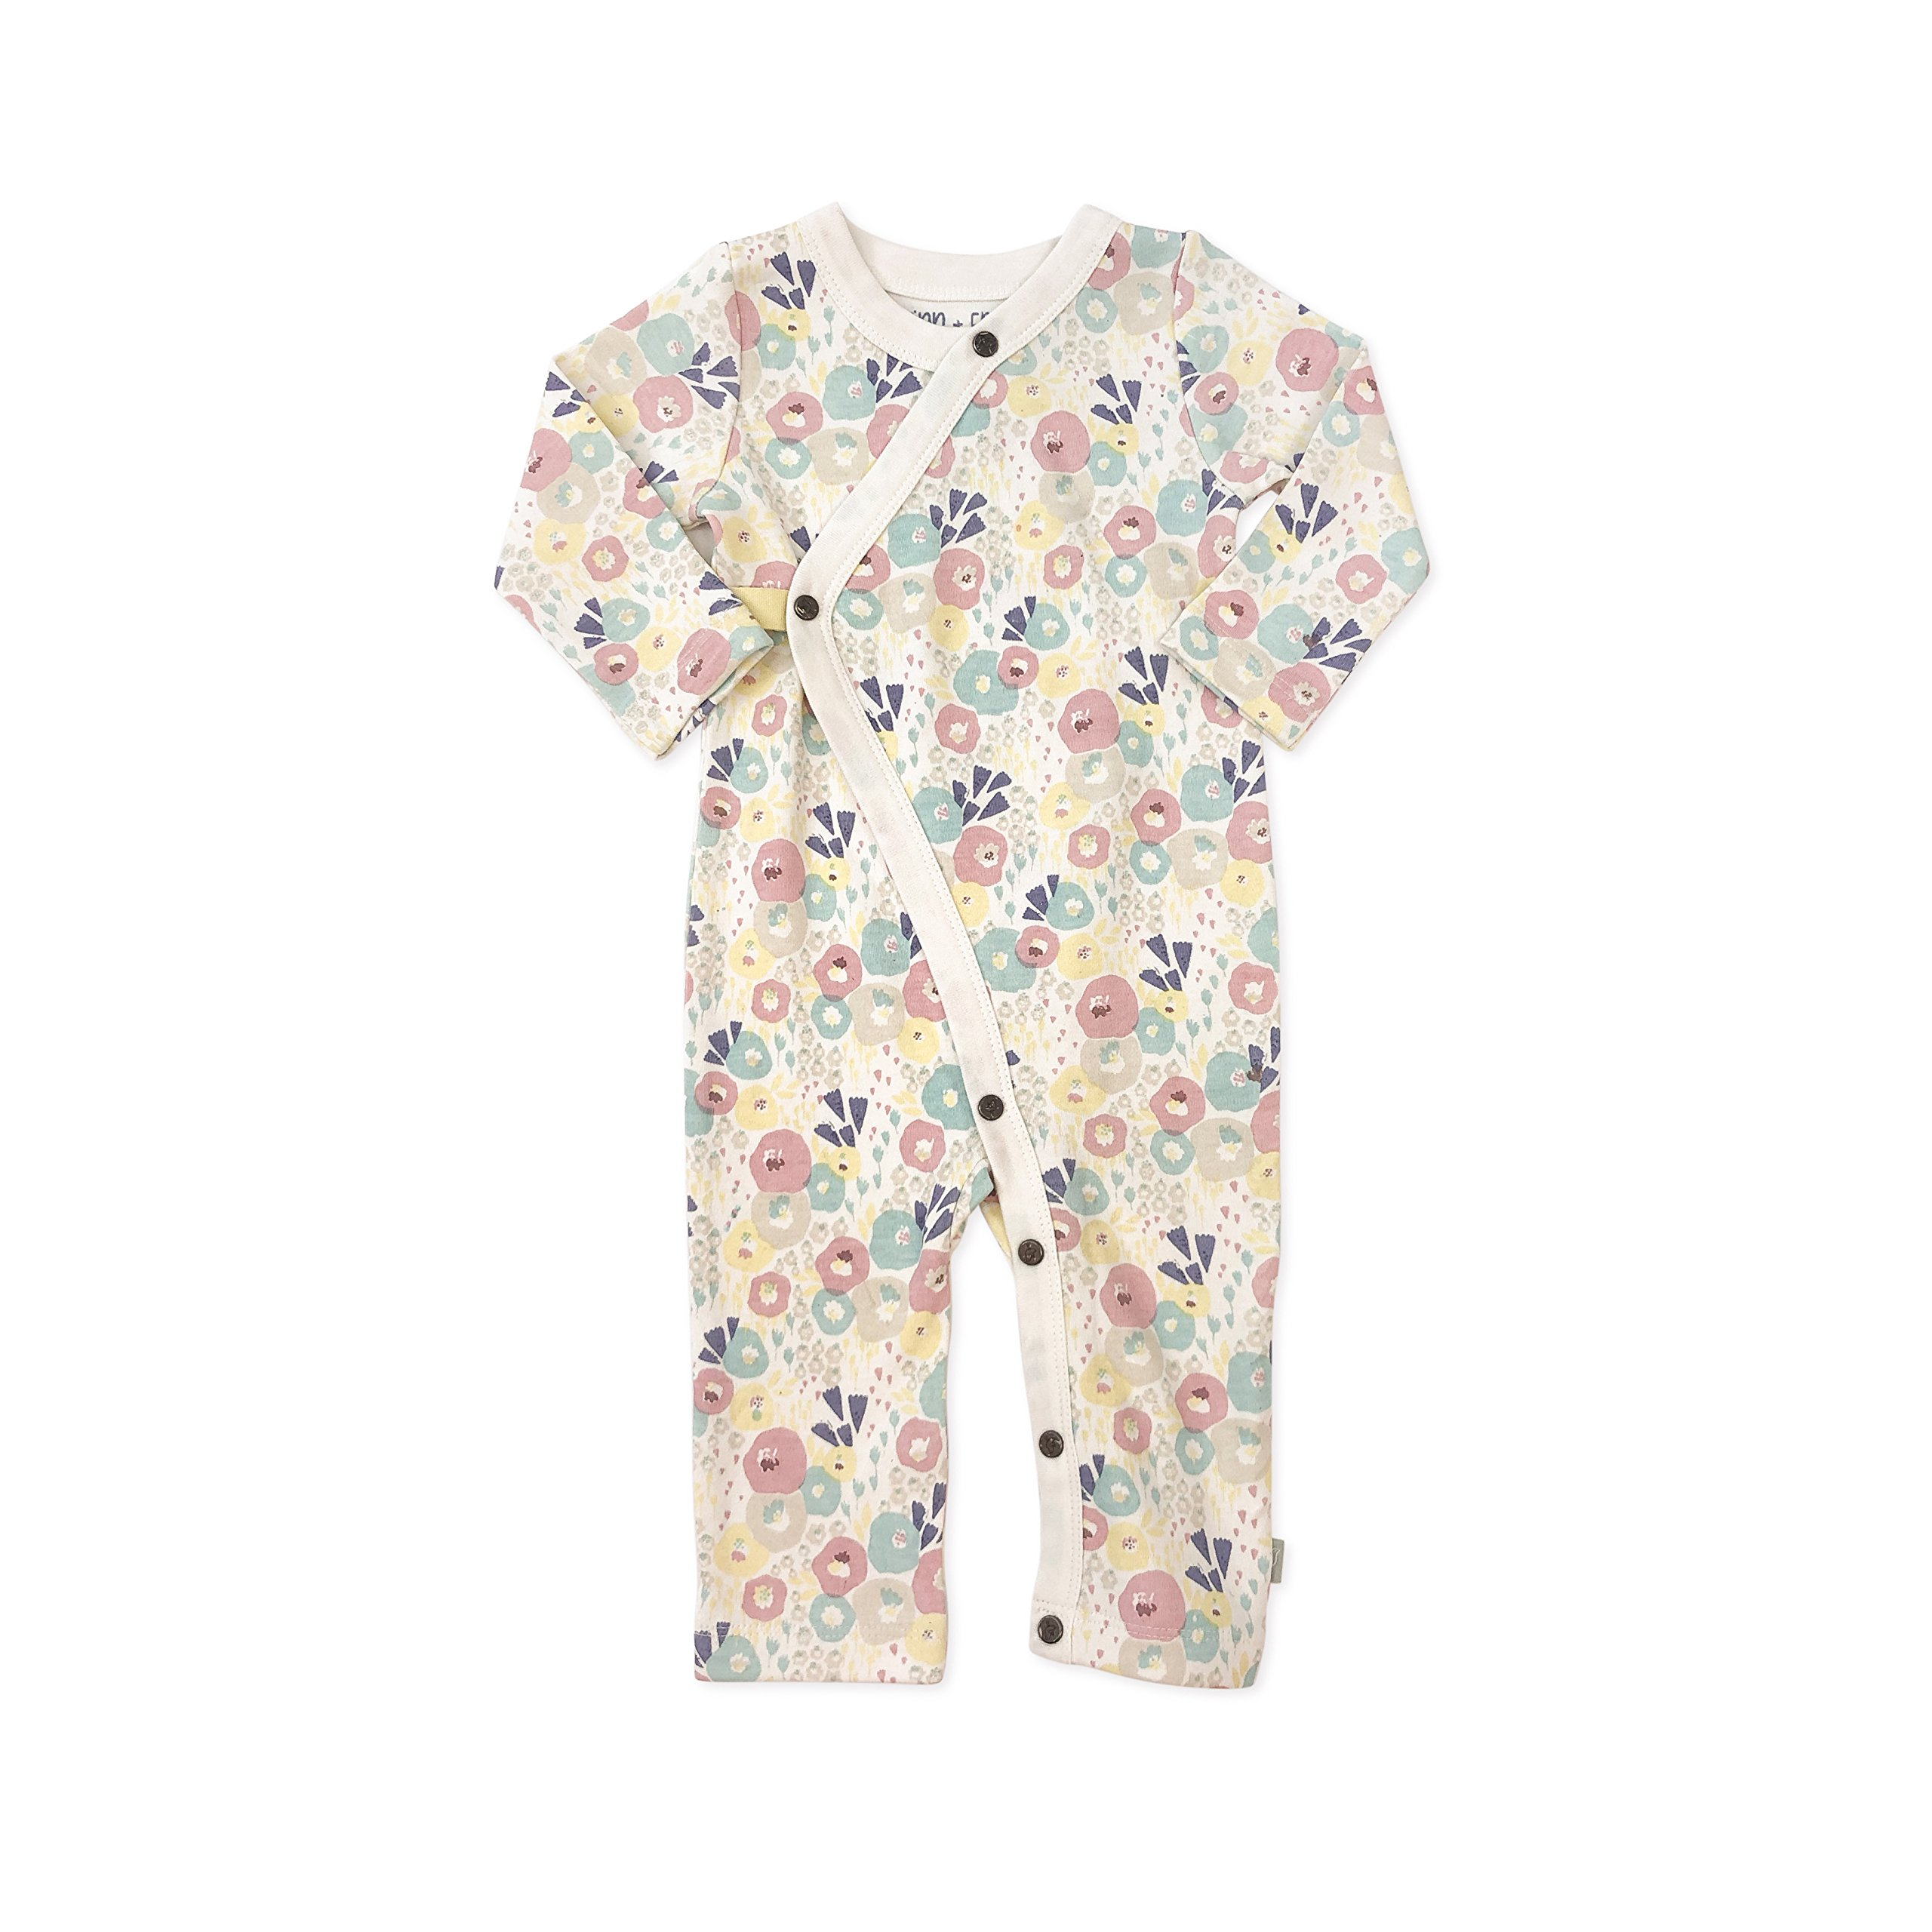 Finn + Emma Organic Cotton One-Piece Baby Coverall - Wildflowers, 6-9 Months